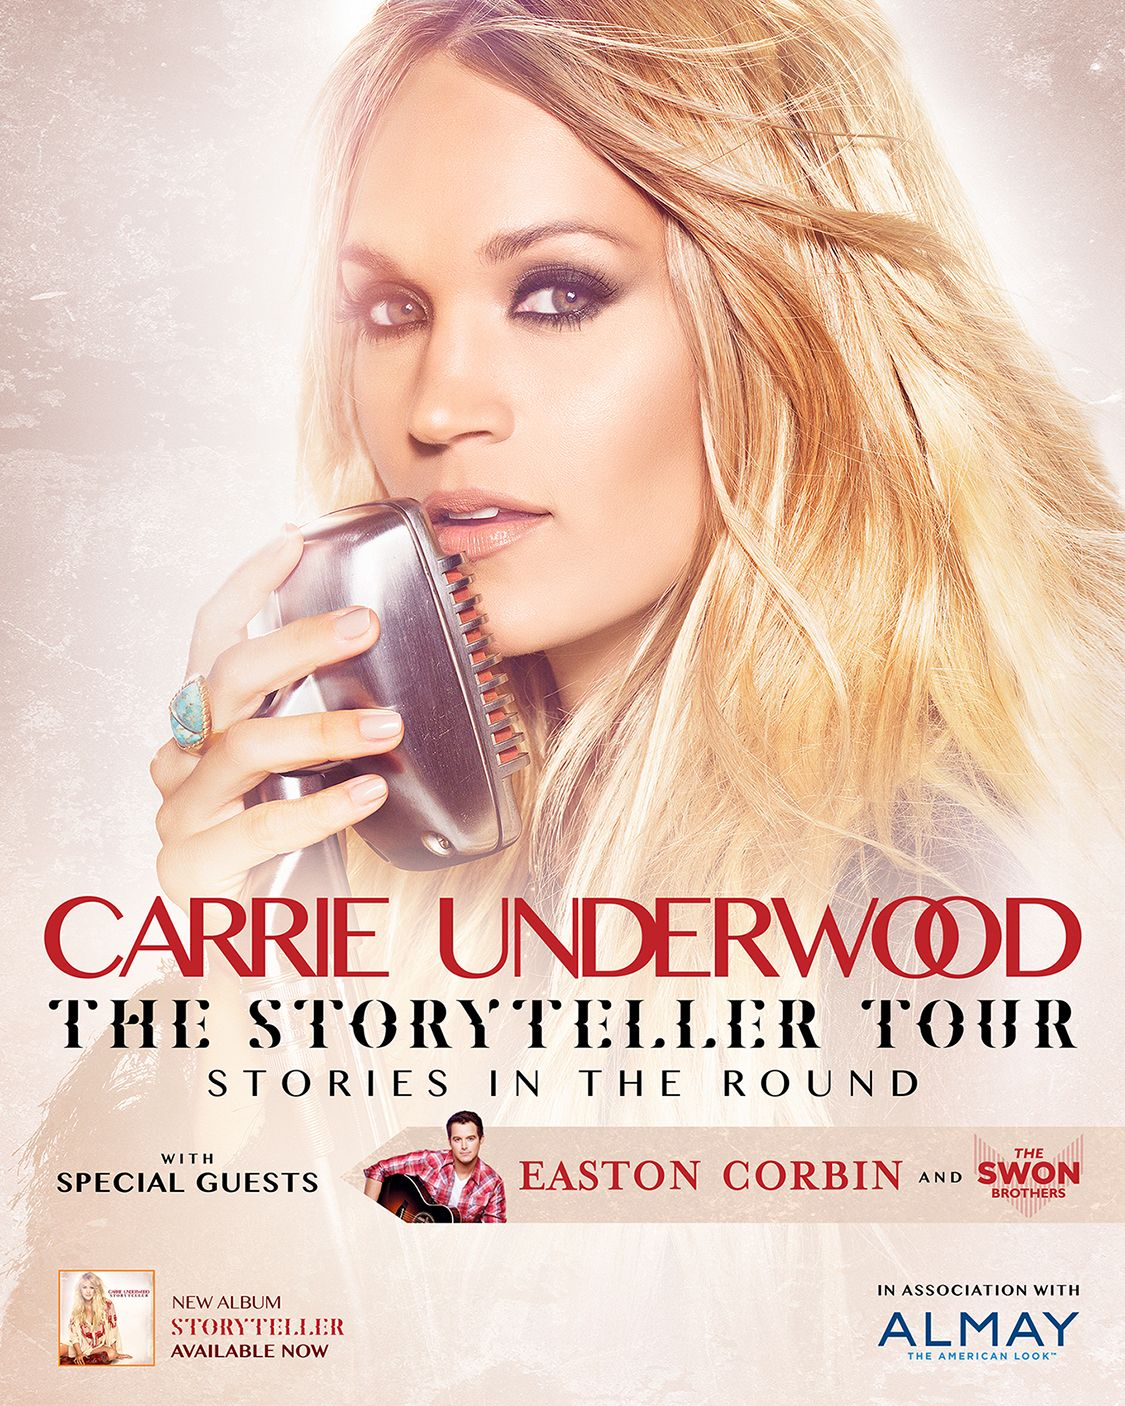 how to meet carrie underwood in person